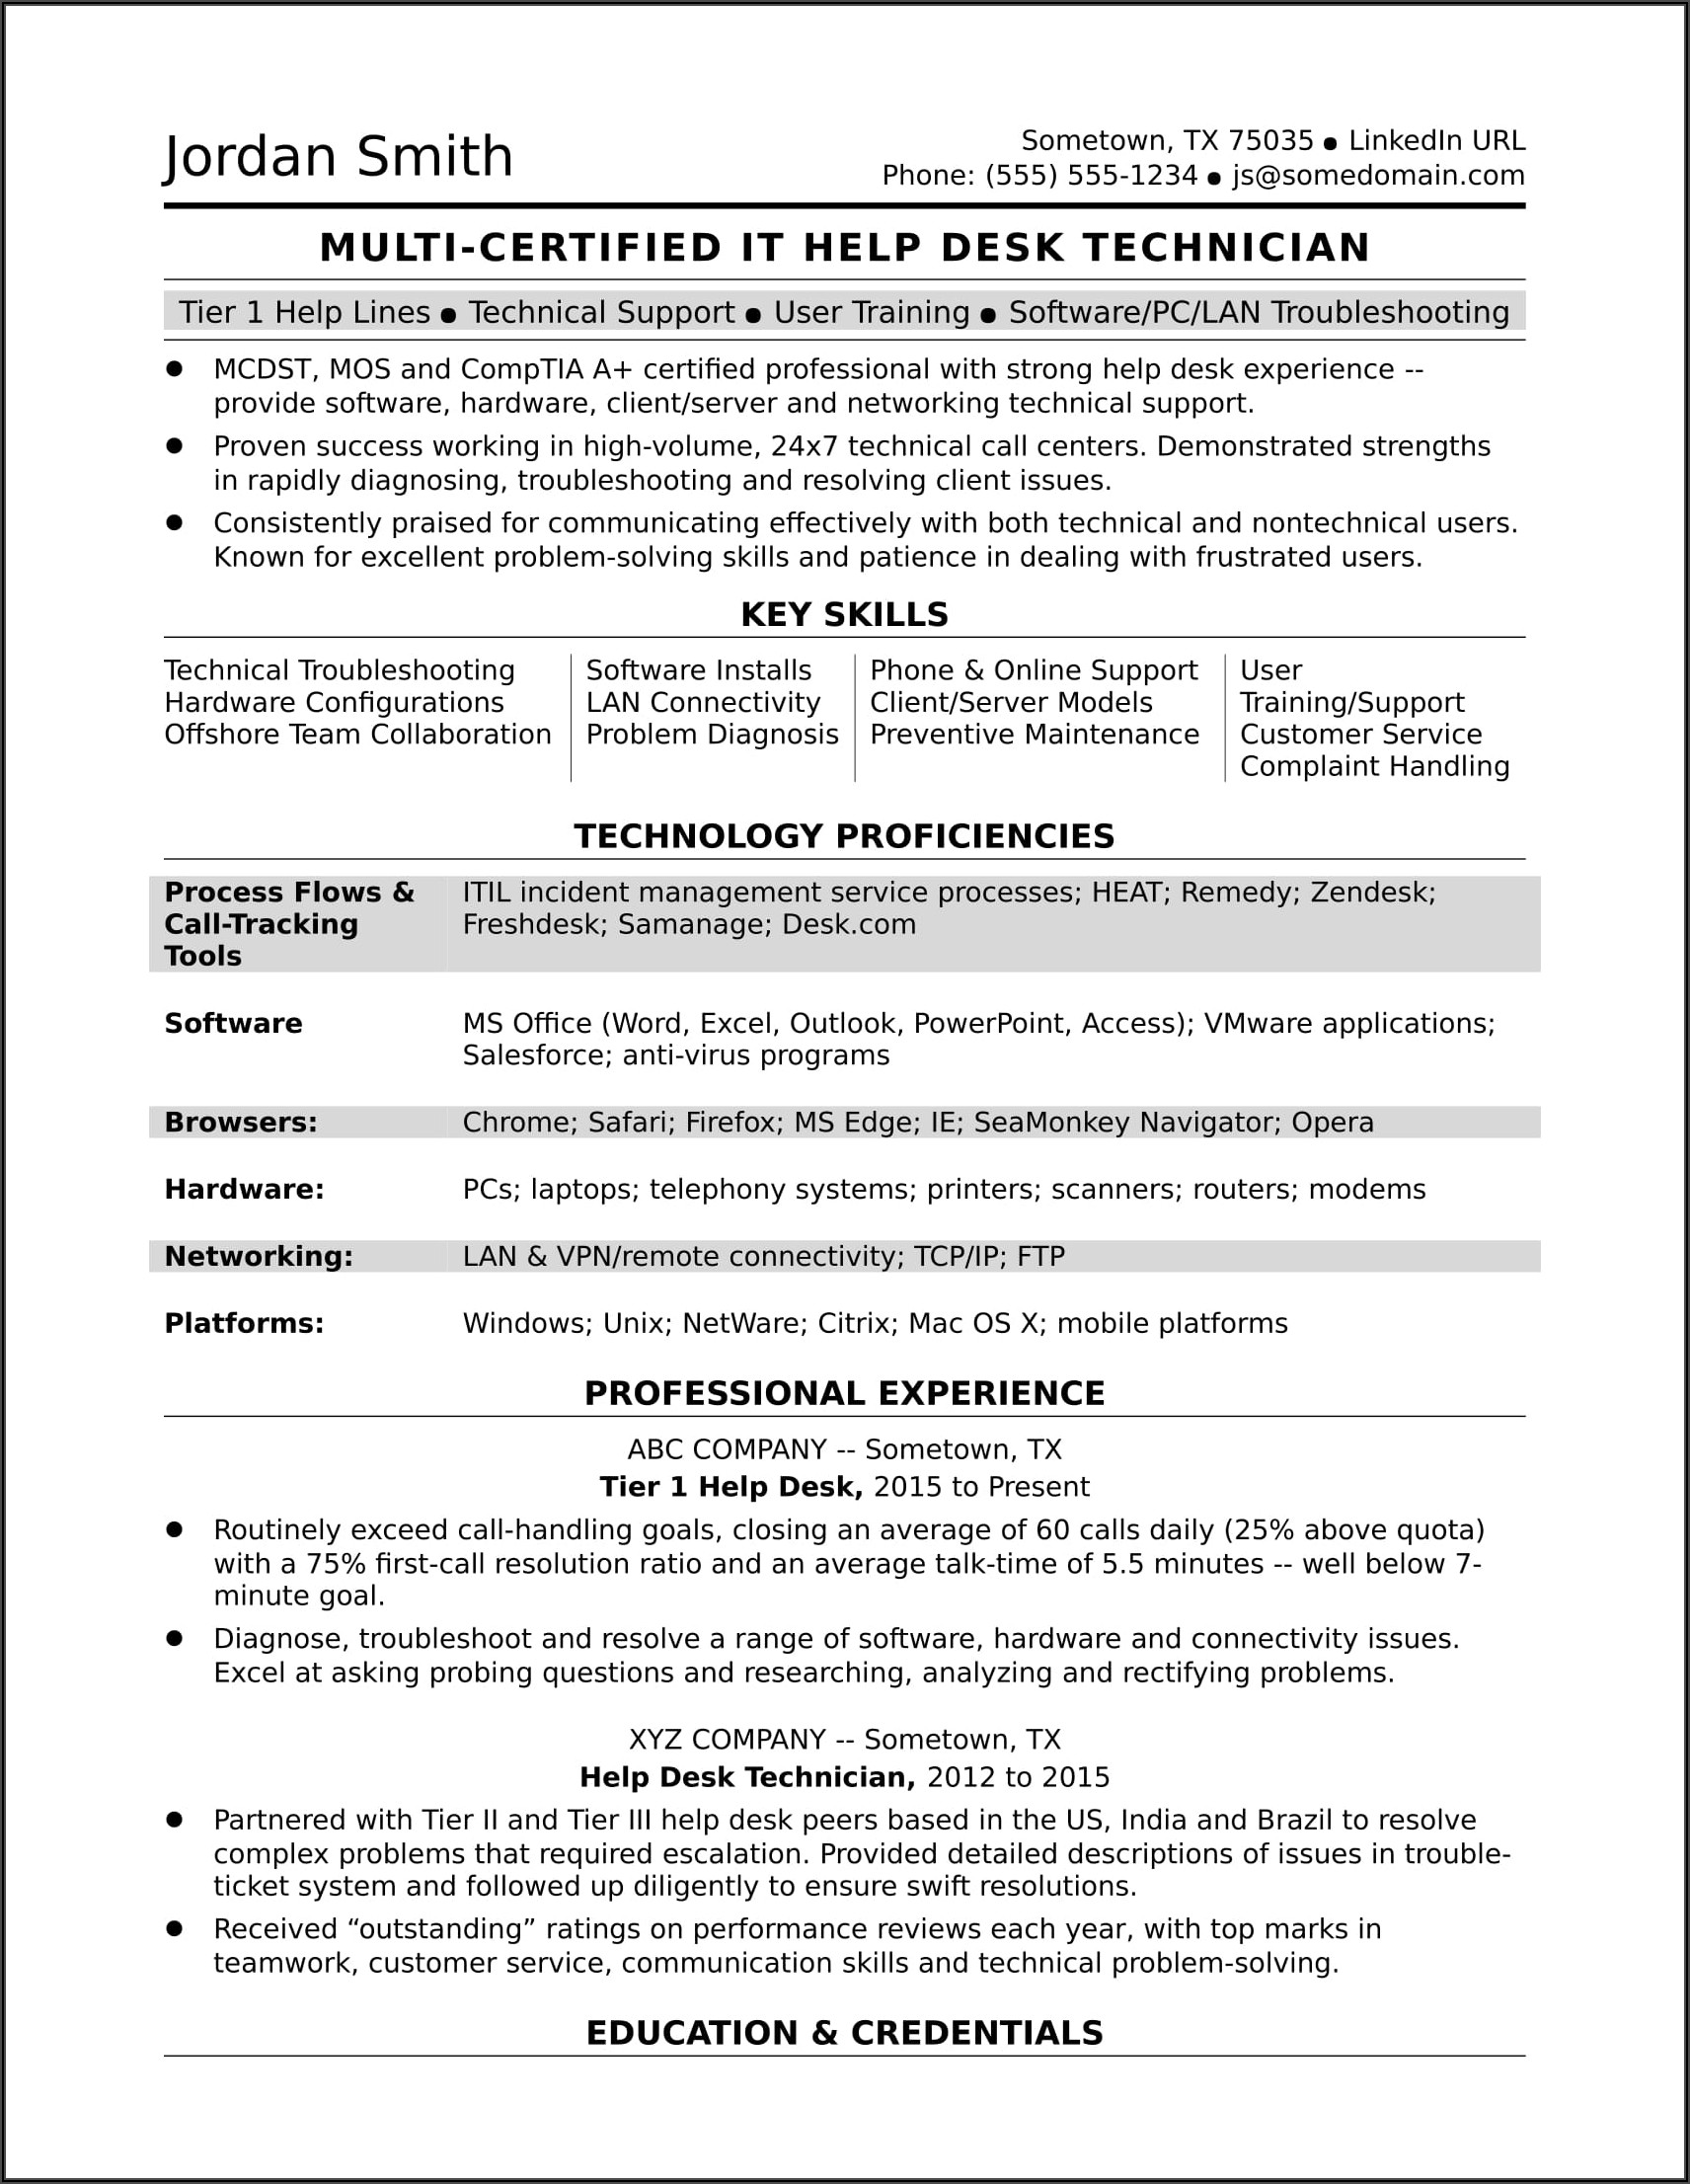 Resume Examples For Education Jobs